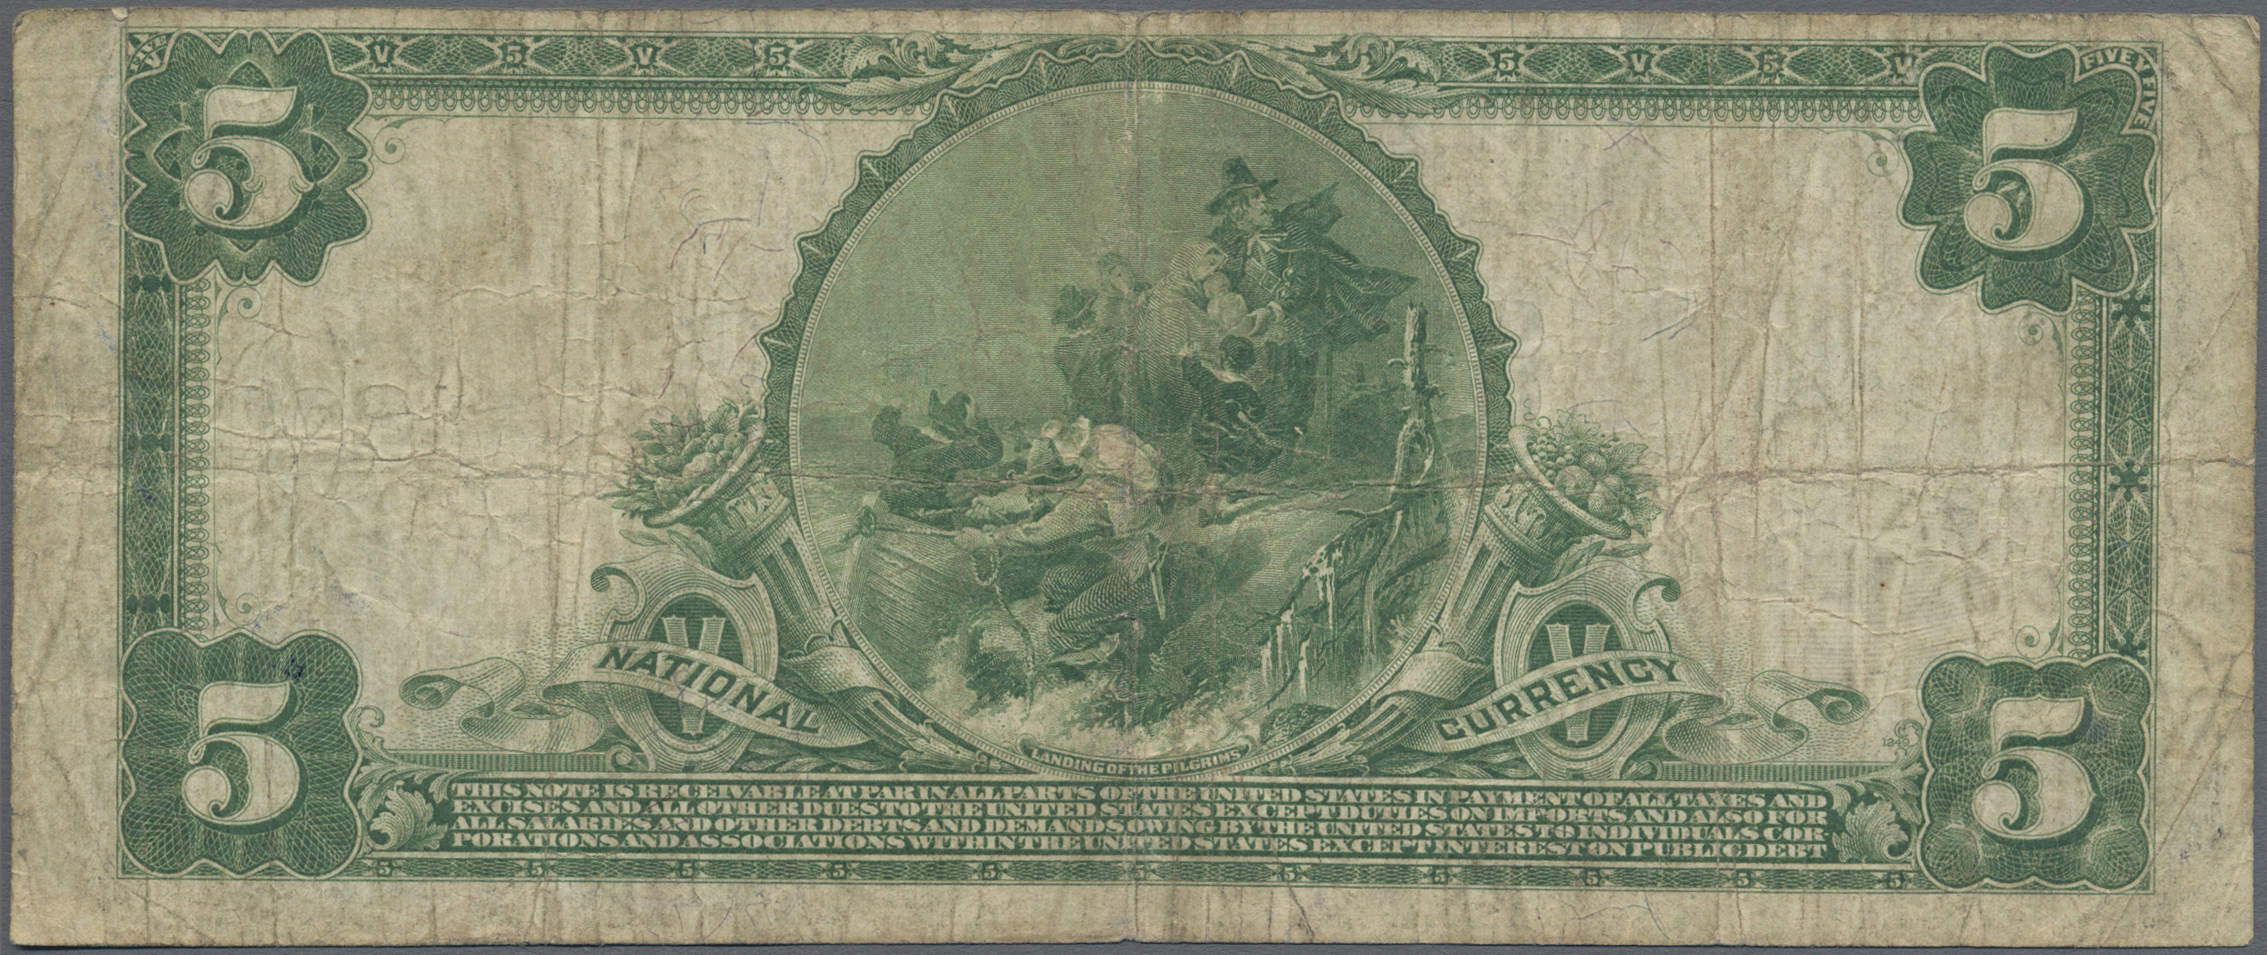 Lot 00910 - United States of America | Banknoten  -  Auktionshaus Christoph Gärtner GmbH & Co. KG Sale #48 The Banknotes